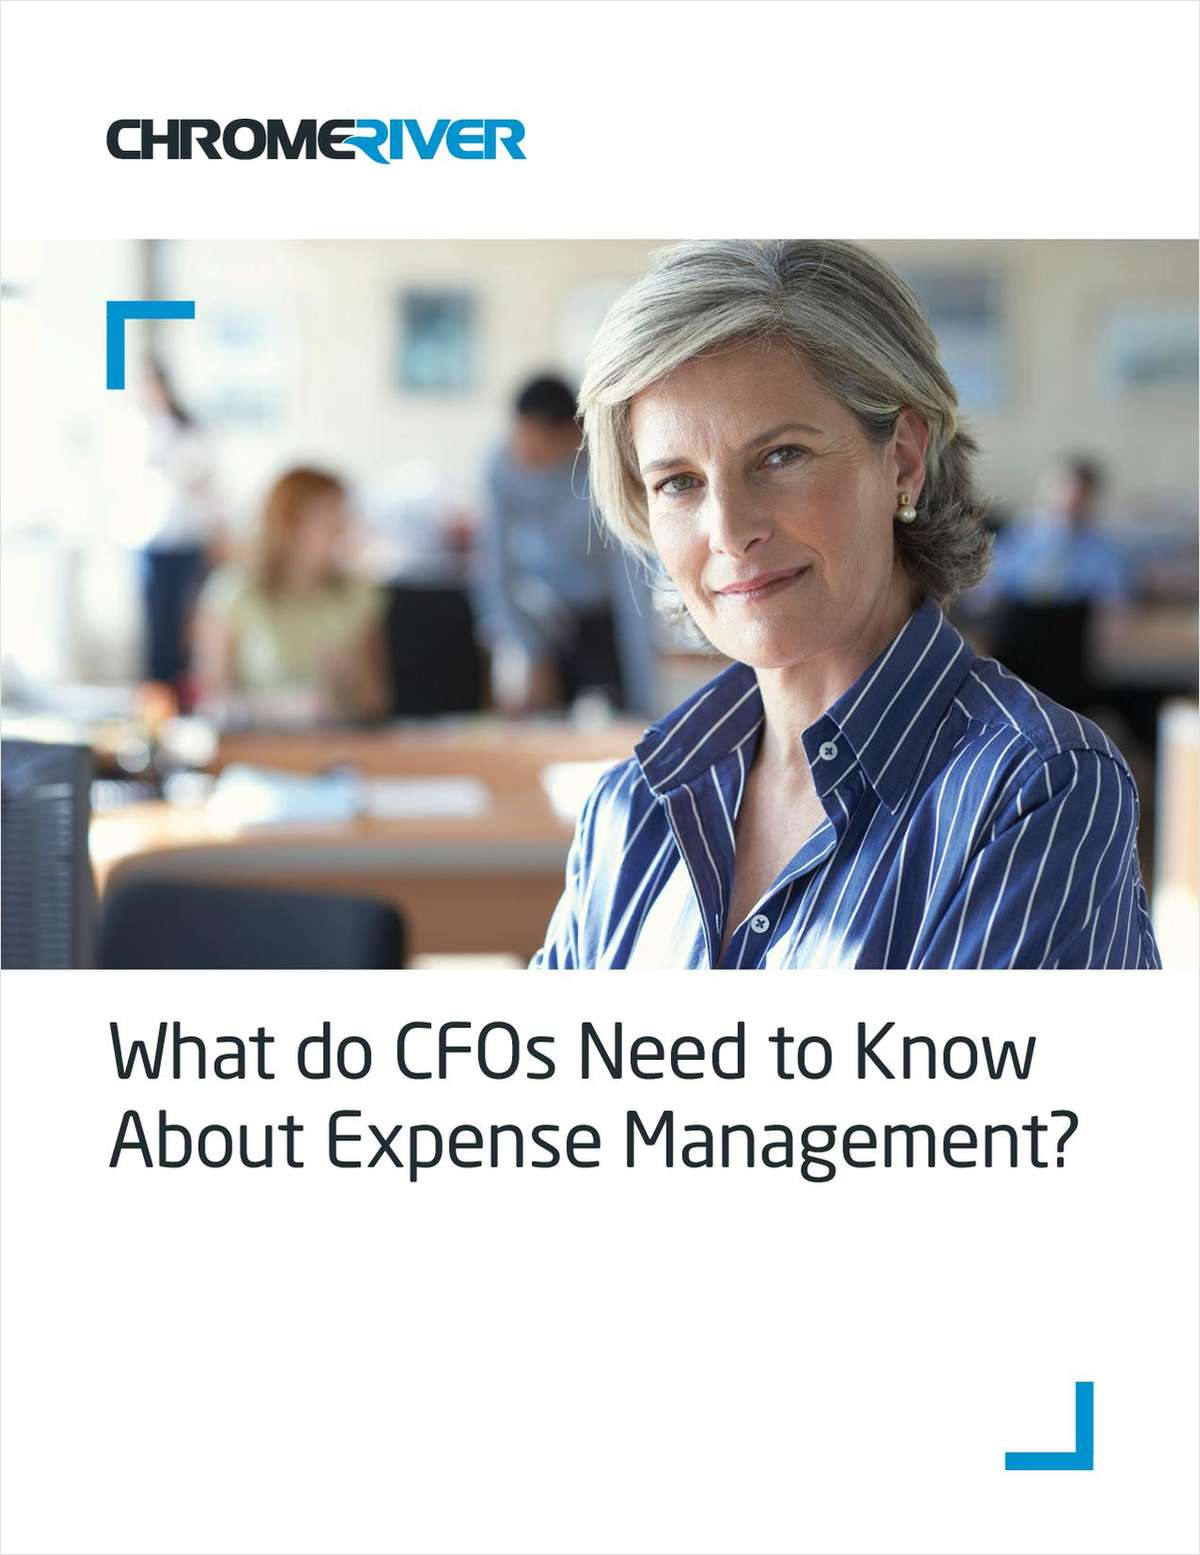 What do CFOs Need to Know About Expense Management?